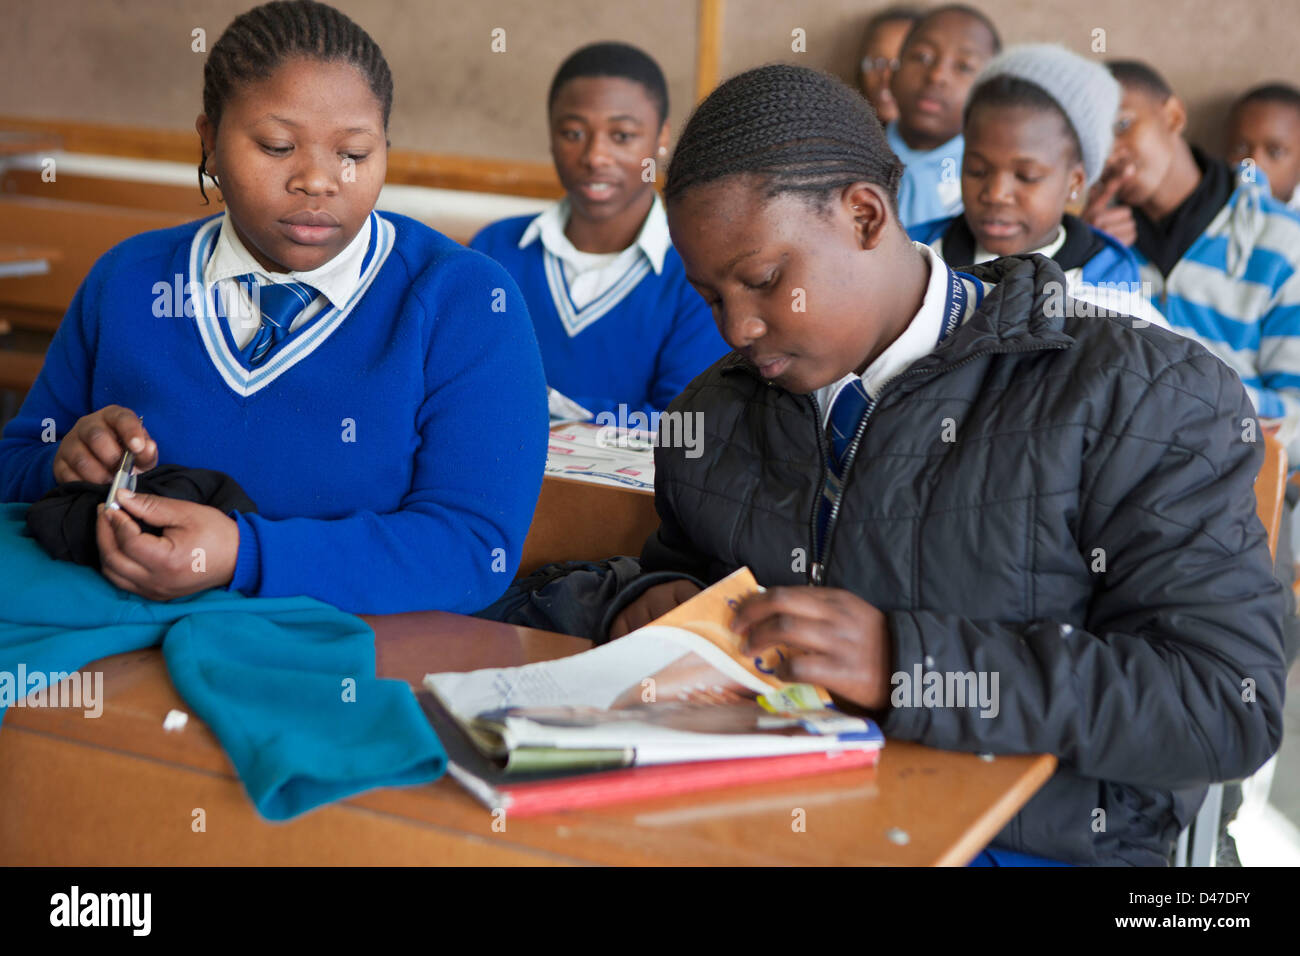 high school dropouts in south africa Ten percent of grade 10 and 11 pupils drop out of school and while the average dropout rate is 4 percent, most who drop out are in grade 9 and up, a report by the department of basic education .